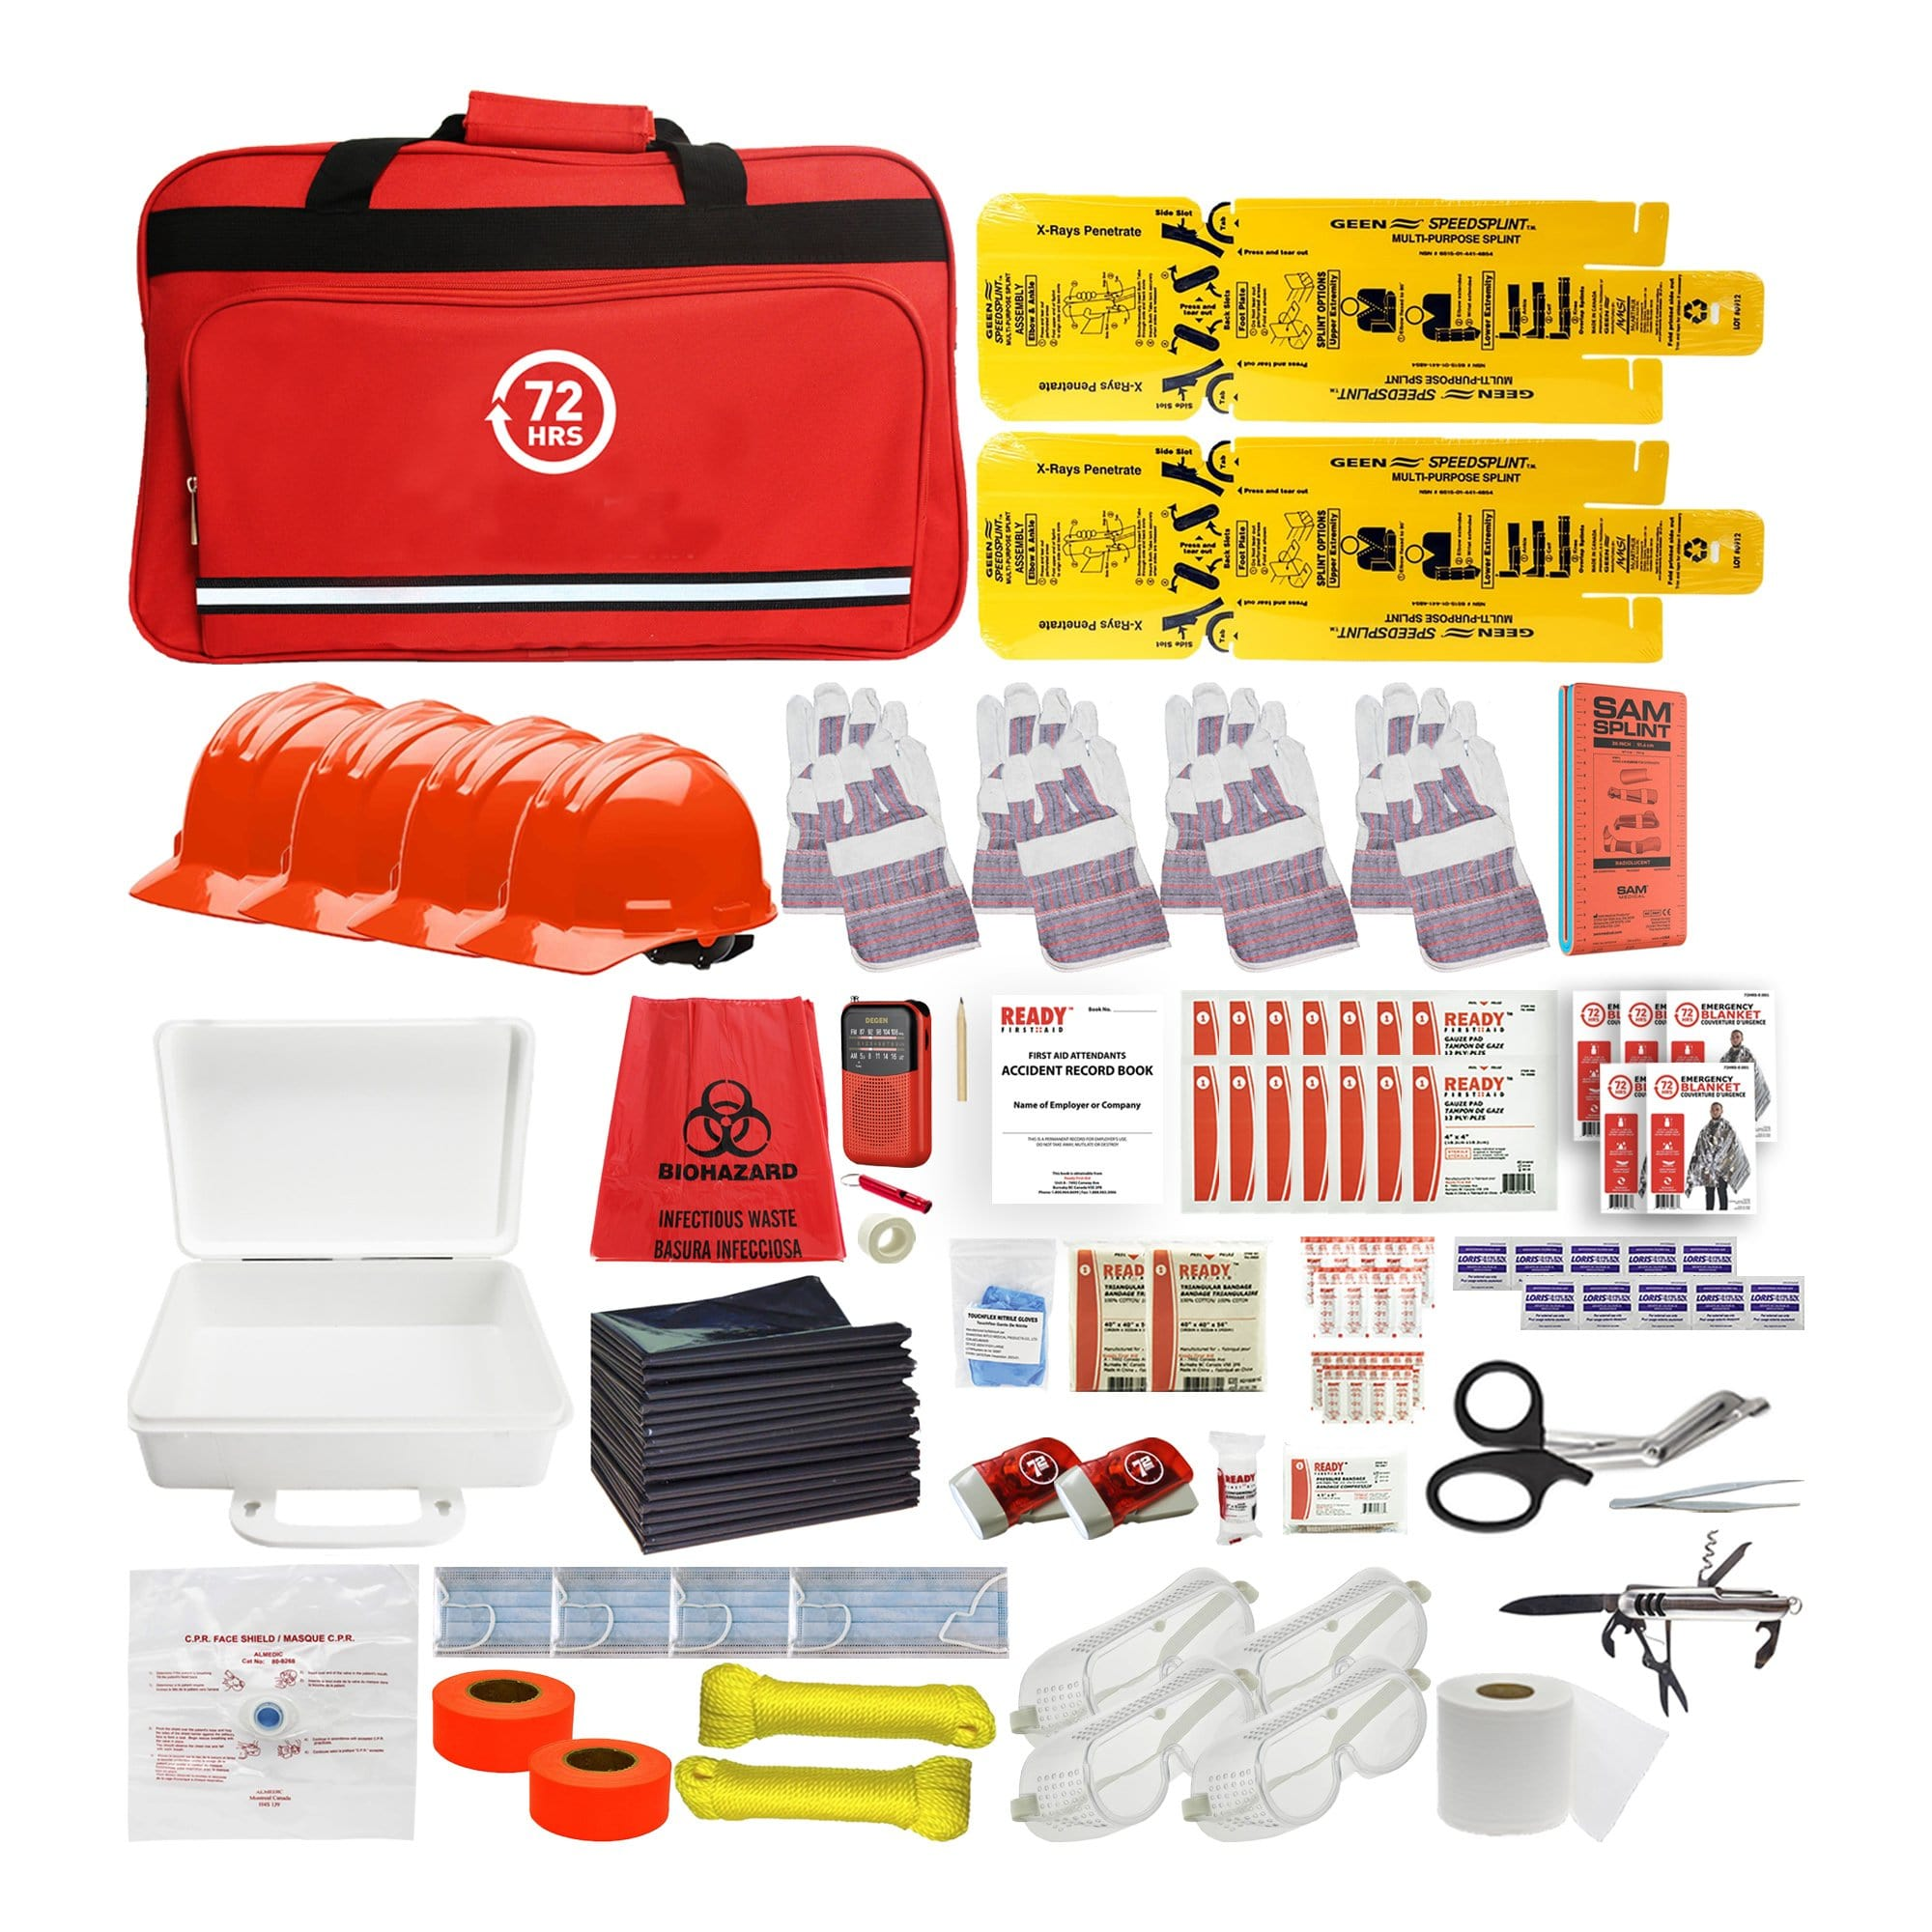 72HRS school emergency survival kit with contents laid outside of red duffle bag